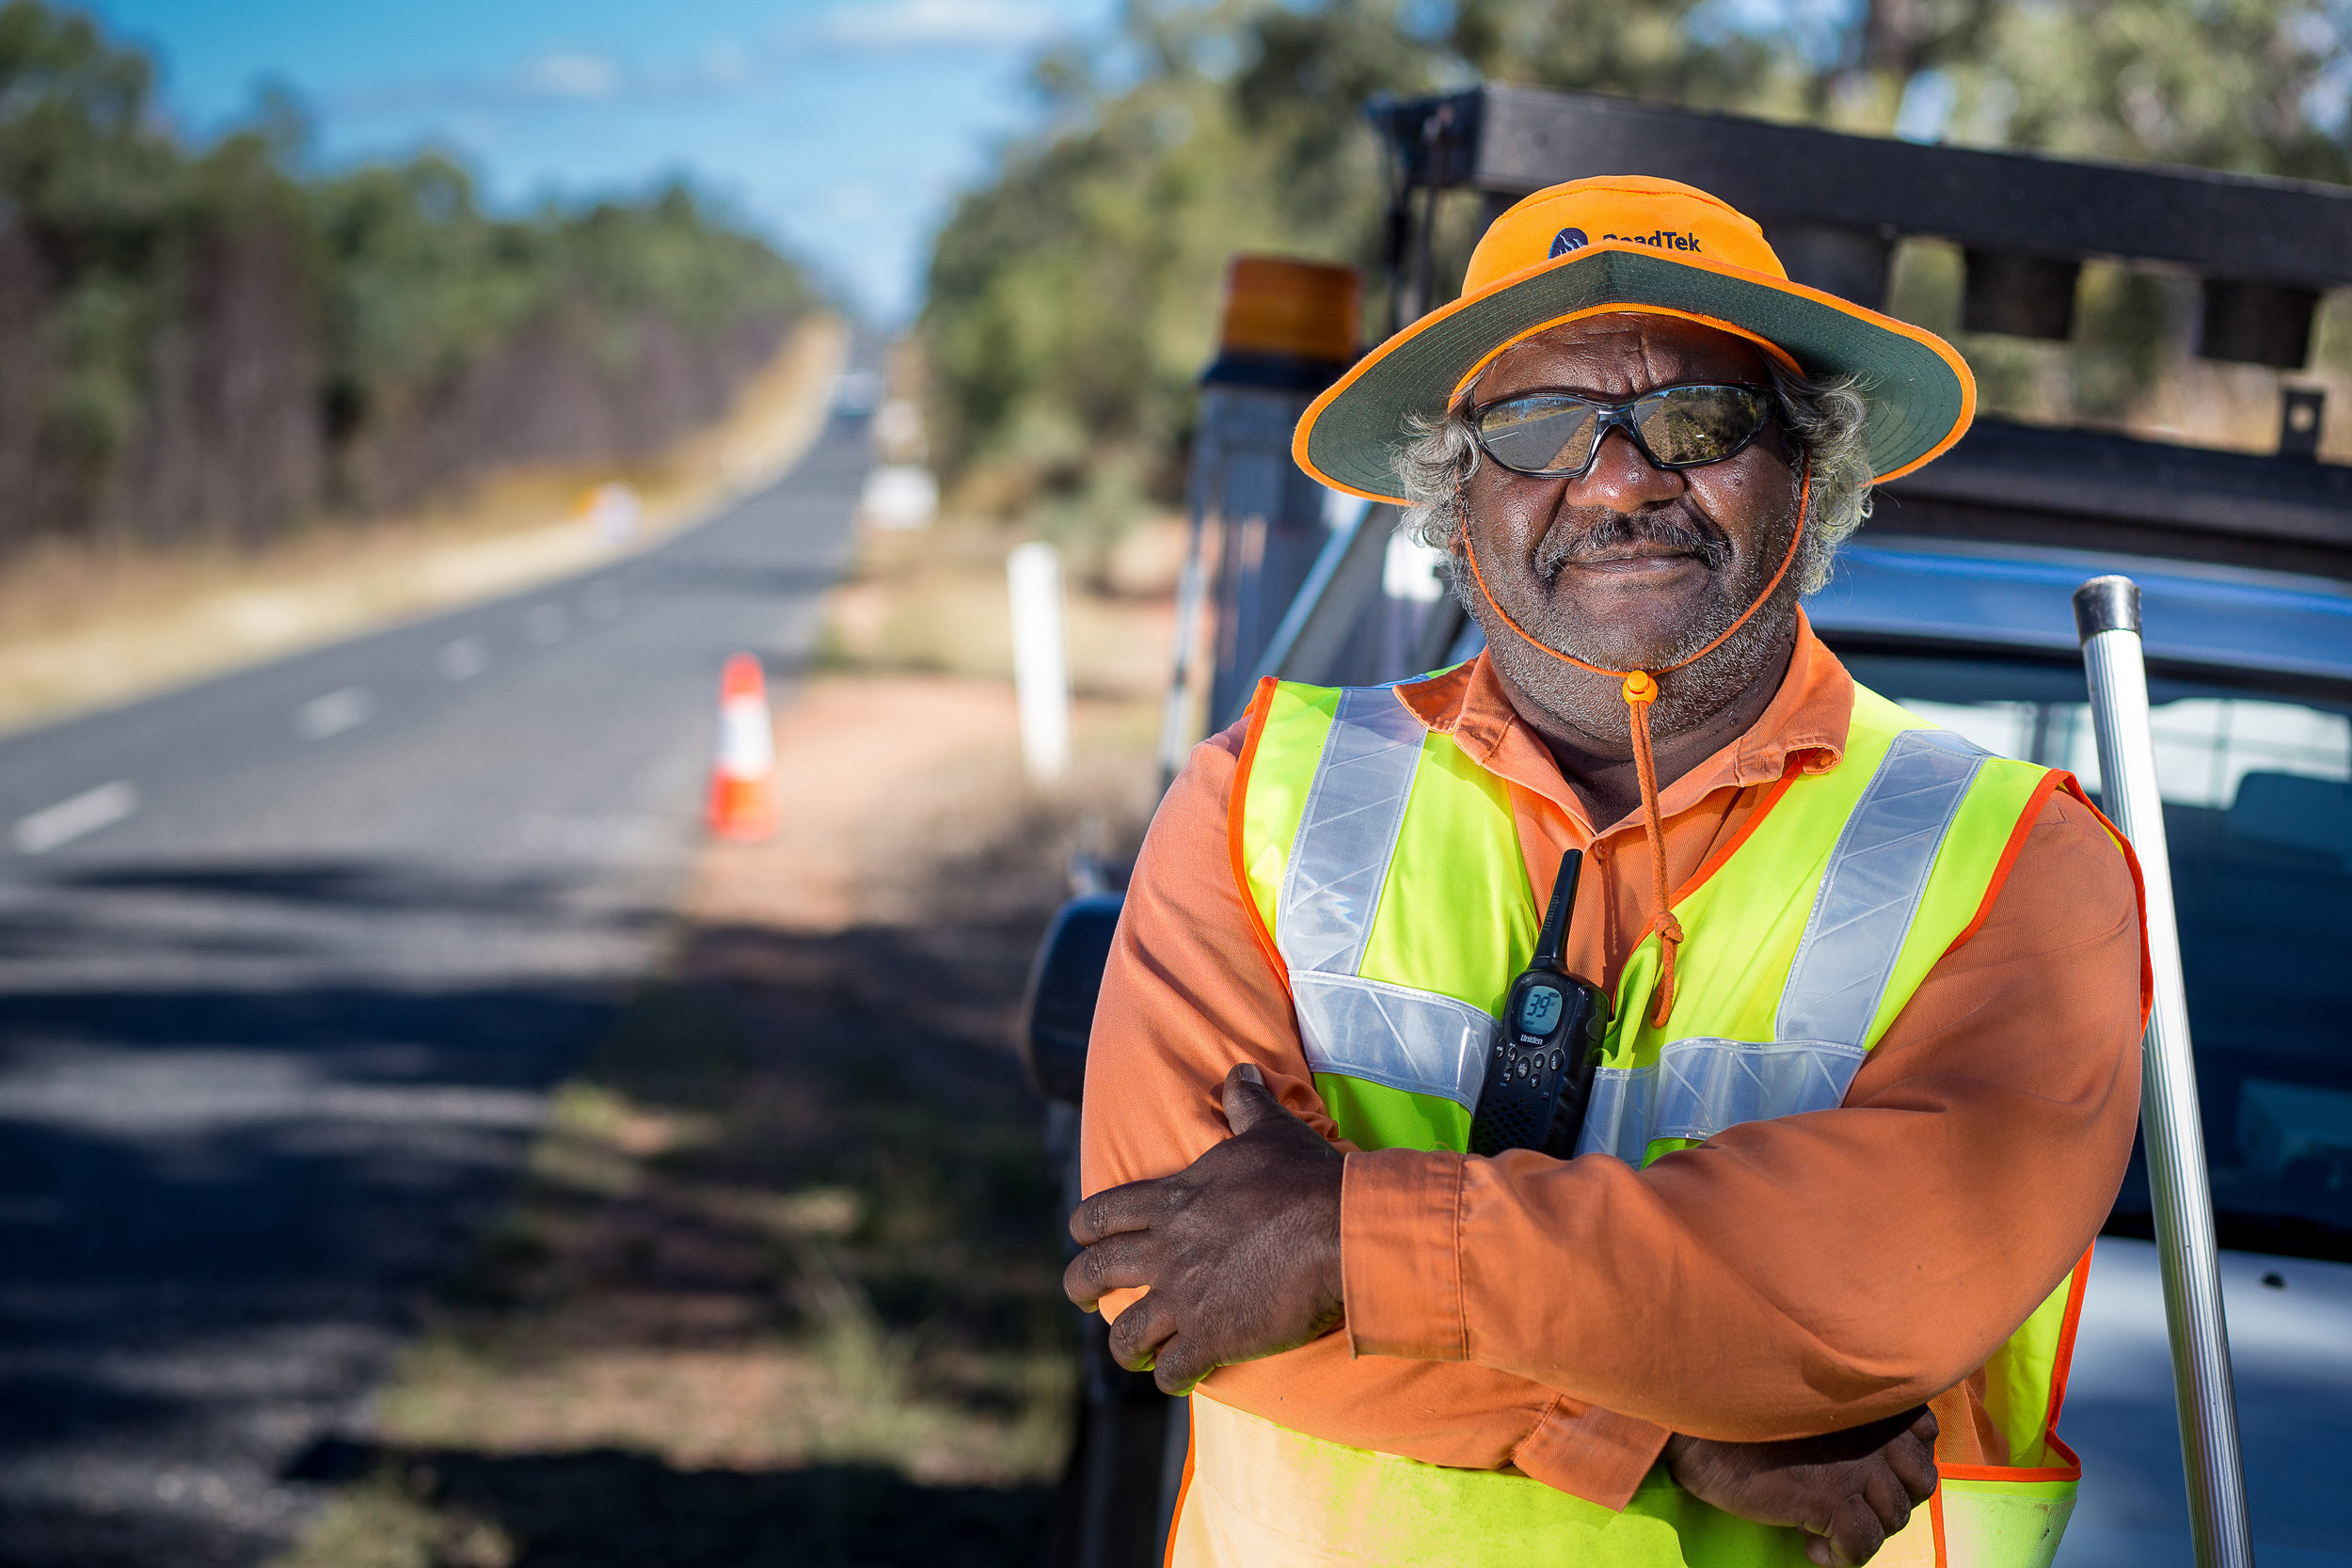 Portrait of an Indigenous Australian council worker working on the road wearing high visibility safety gear and sun protection